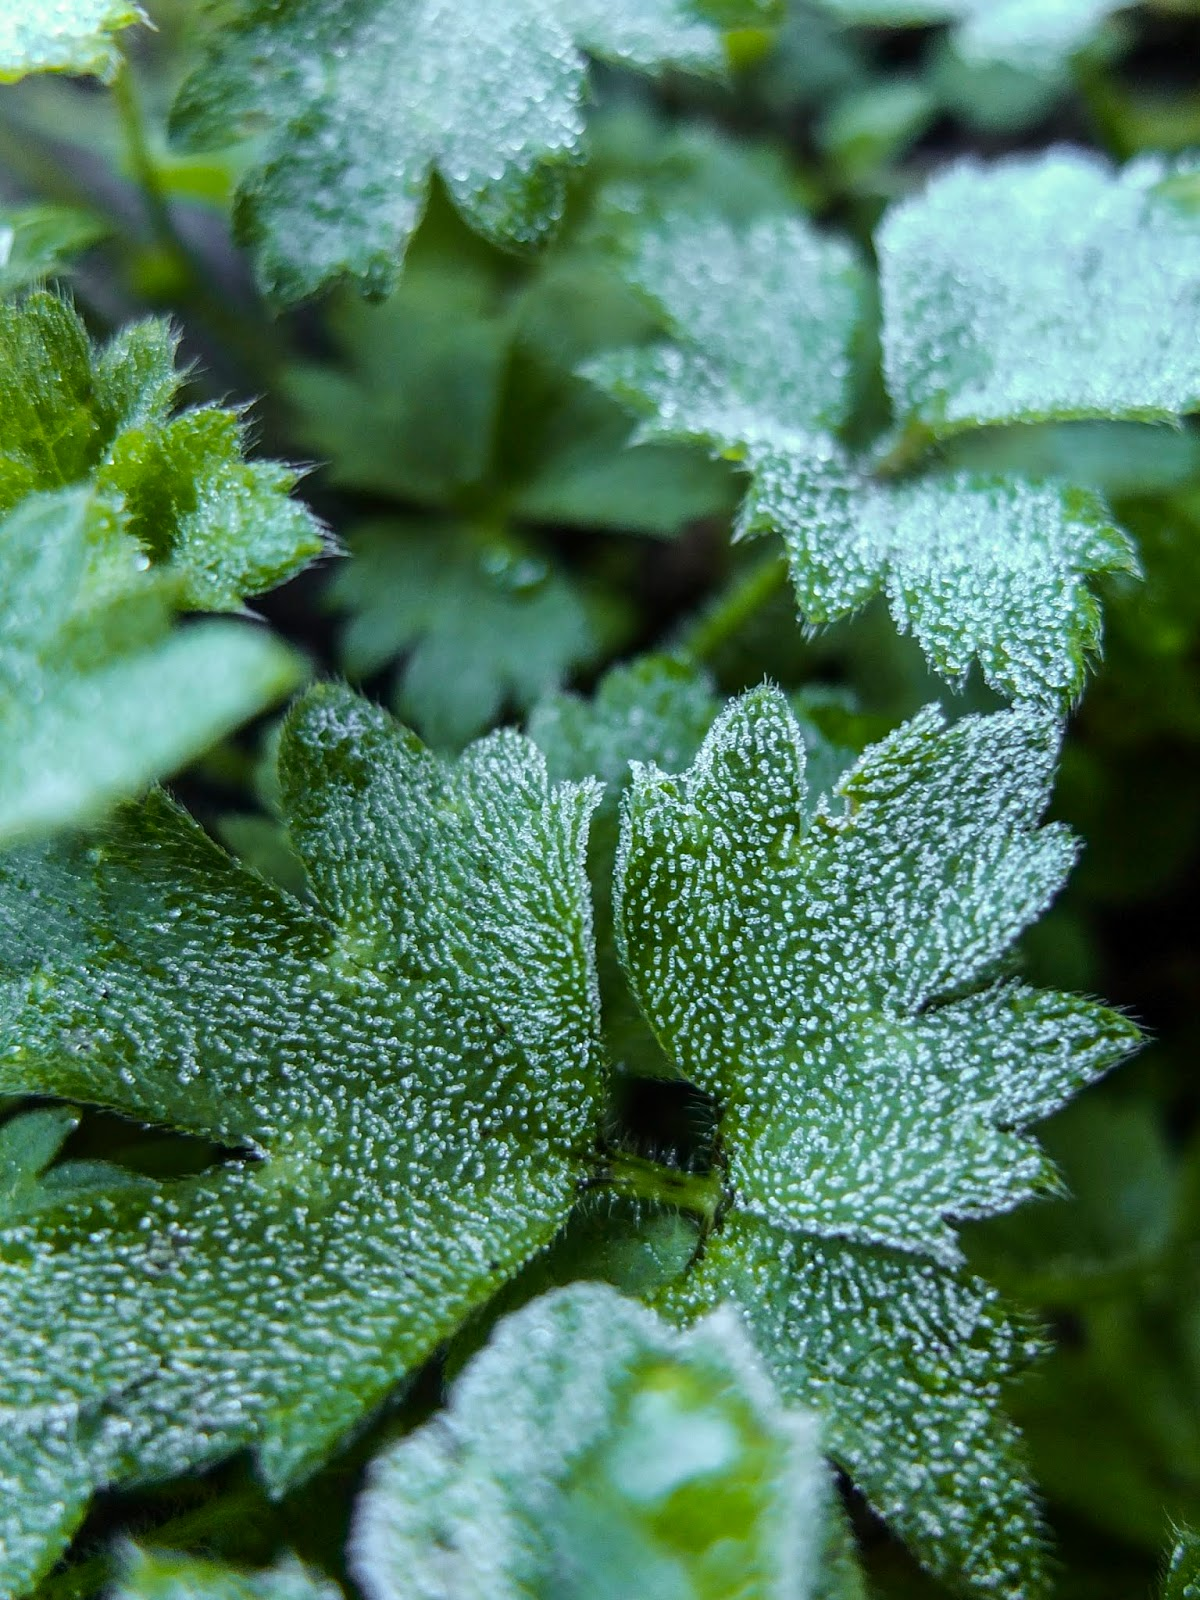 A macro of frost on green leaves.